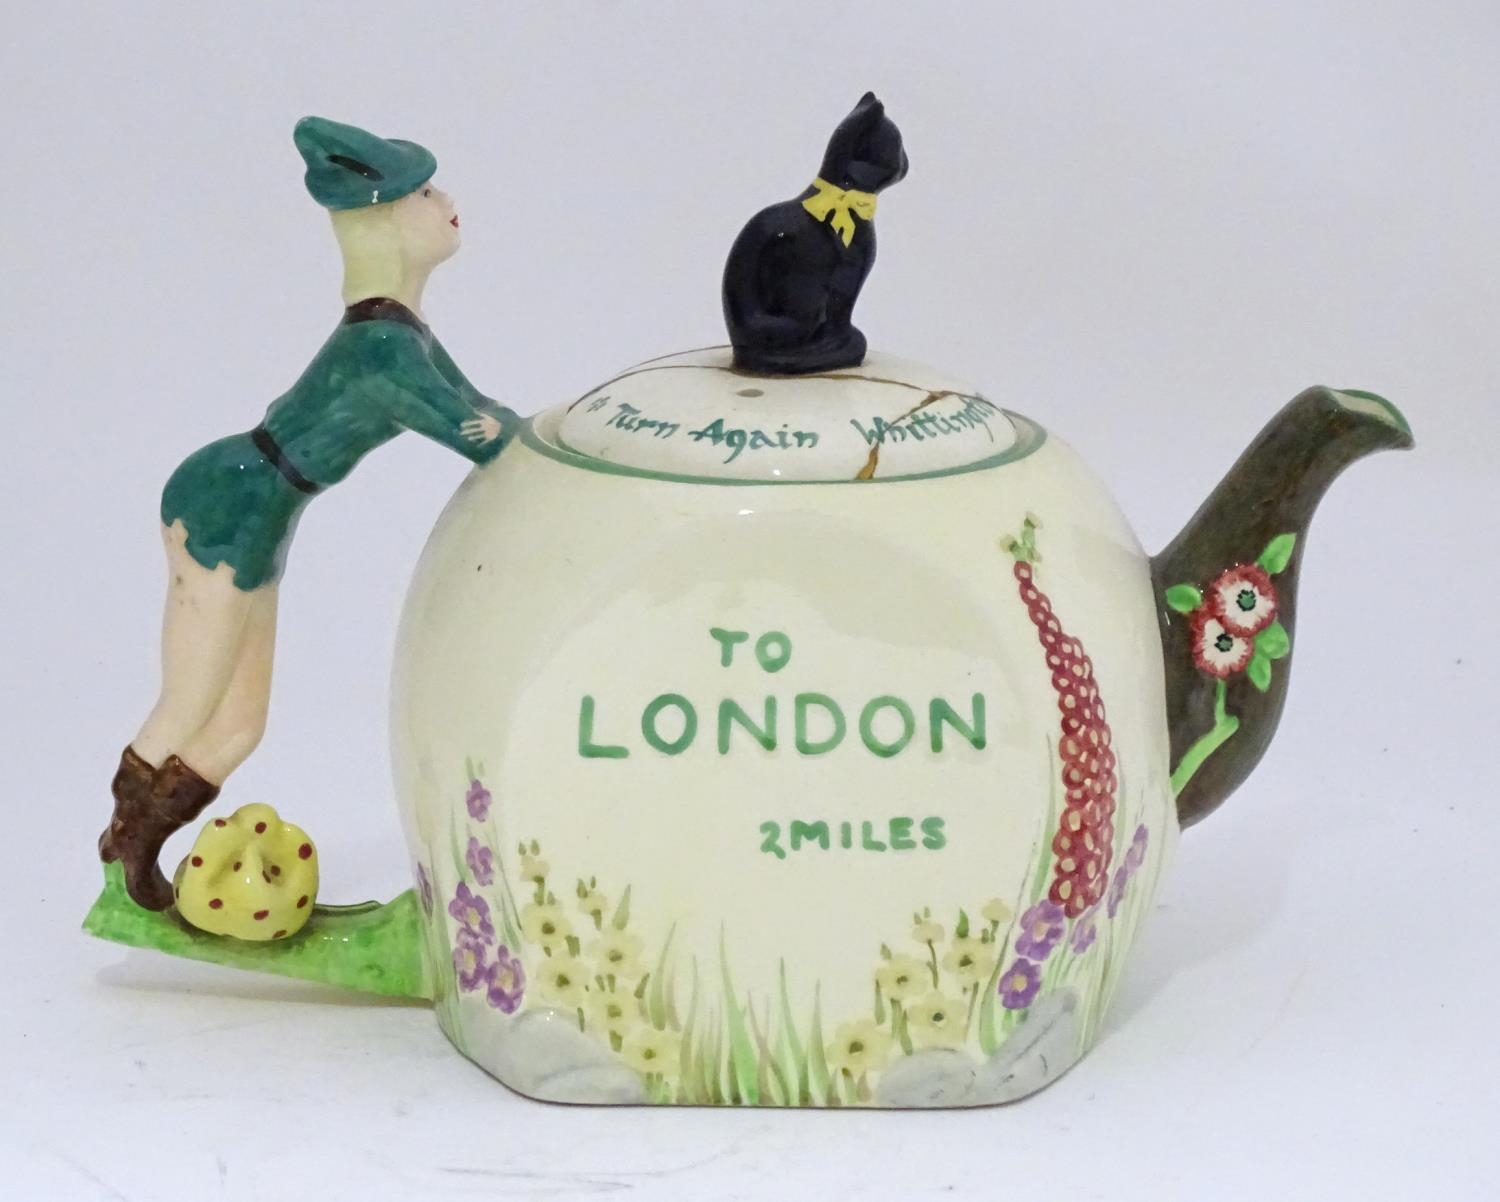 A novelty Dick Whittington teapot Please Note - we do not make reference to the condition of lots - Image 4 of 6